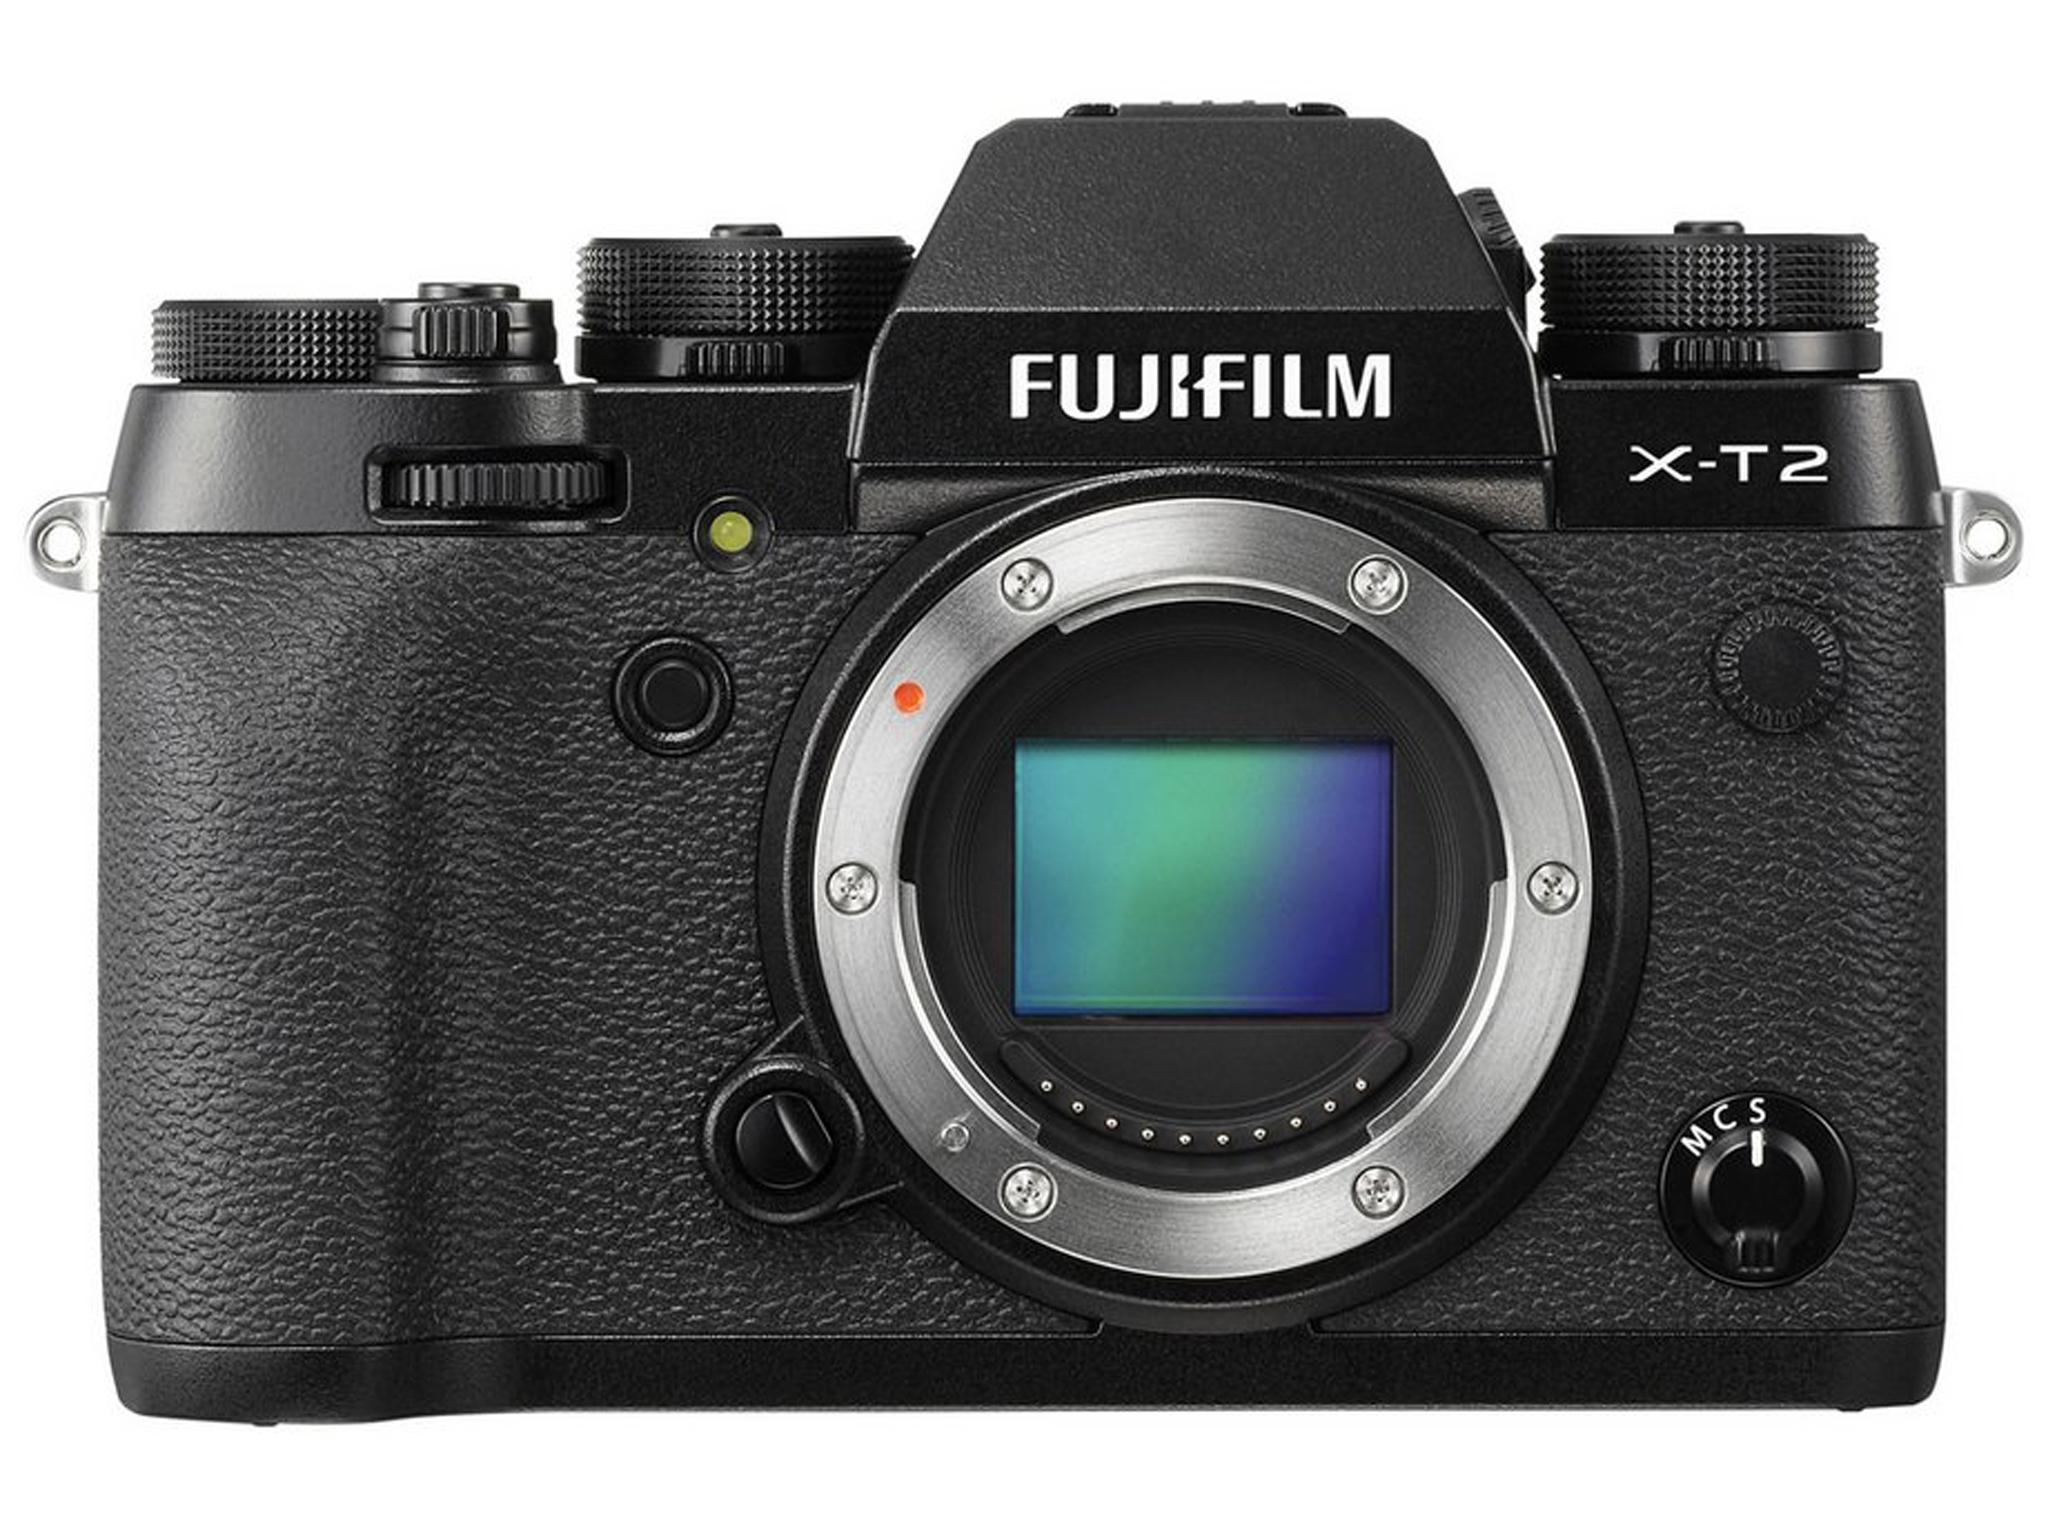 10 Best Compact System Cameras The Independent Drybox Camera Mirrorless Canon Eos M10 Fuji X T2 Body Only 1399 Argos